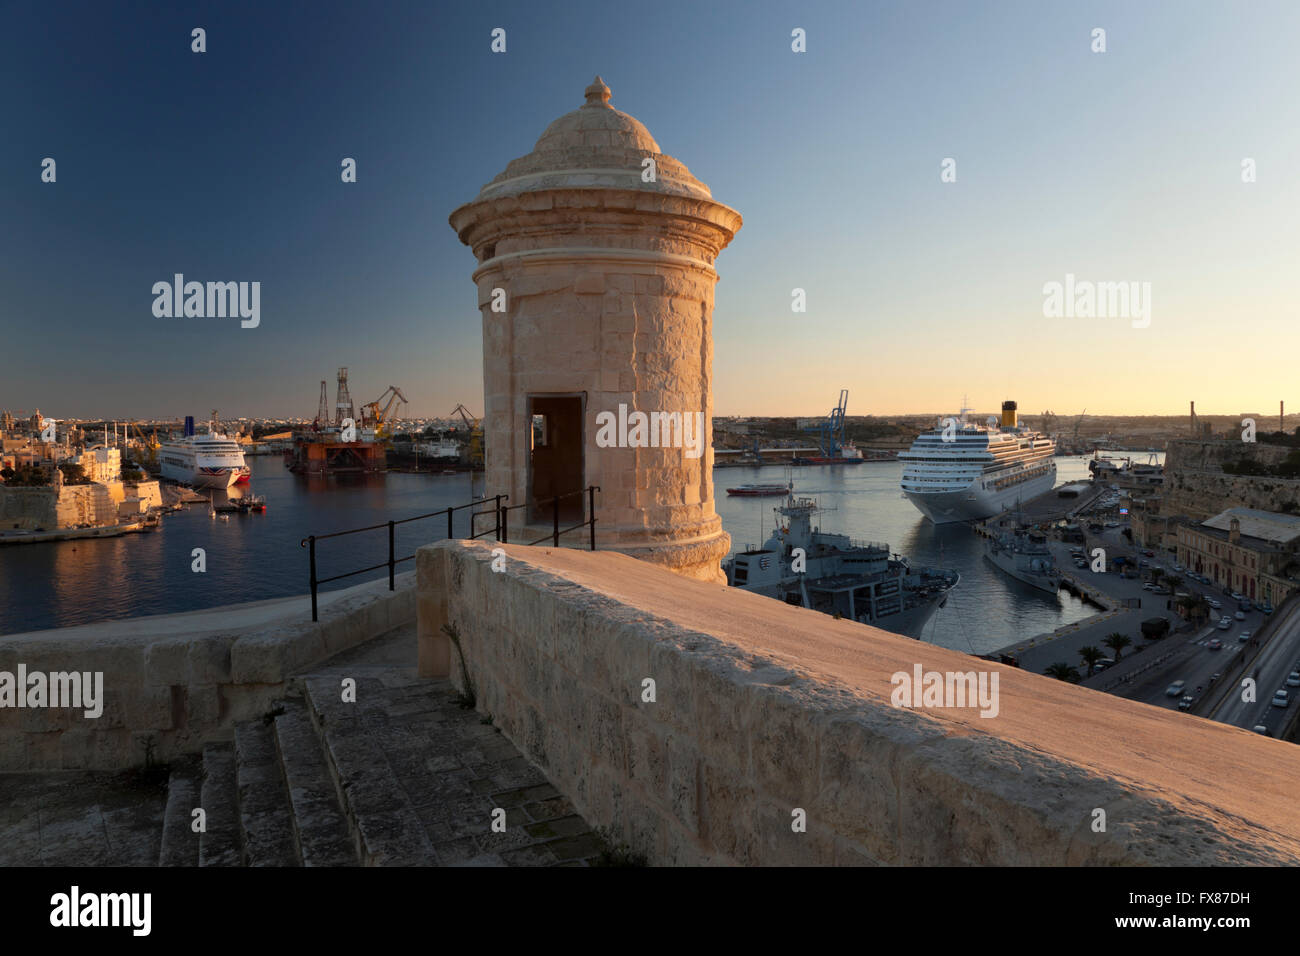 The sentry post at Valletta's landfront fortifications and the Grand Harbour in the background. - Stock Image